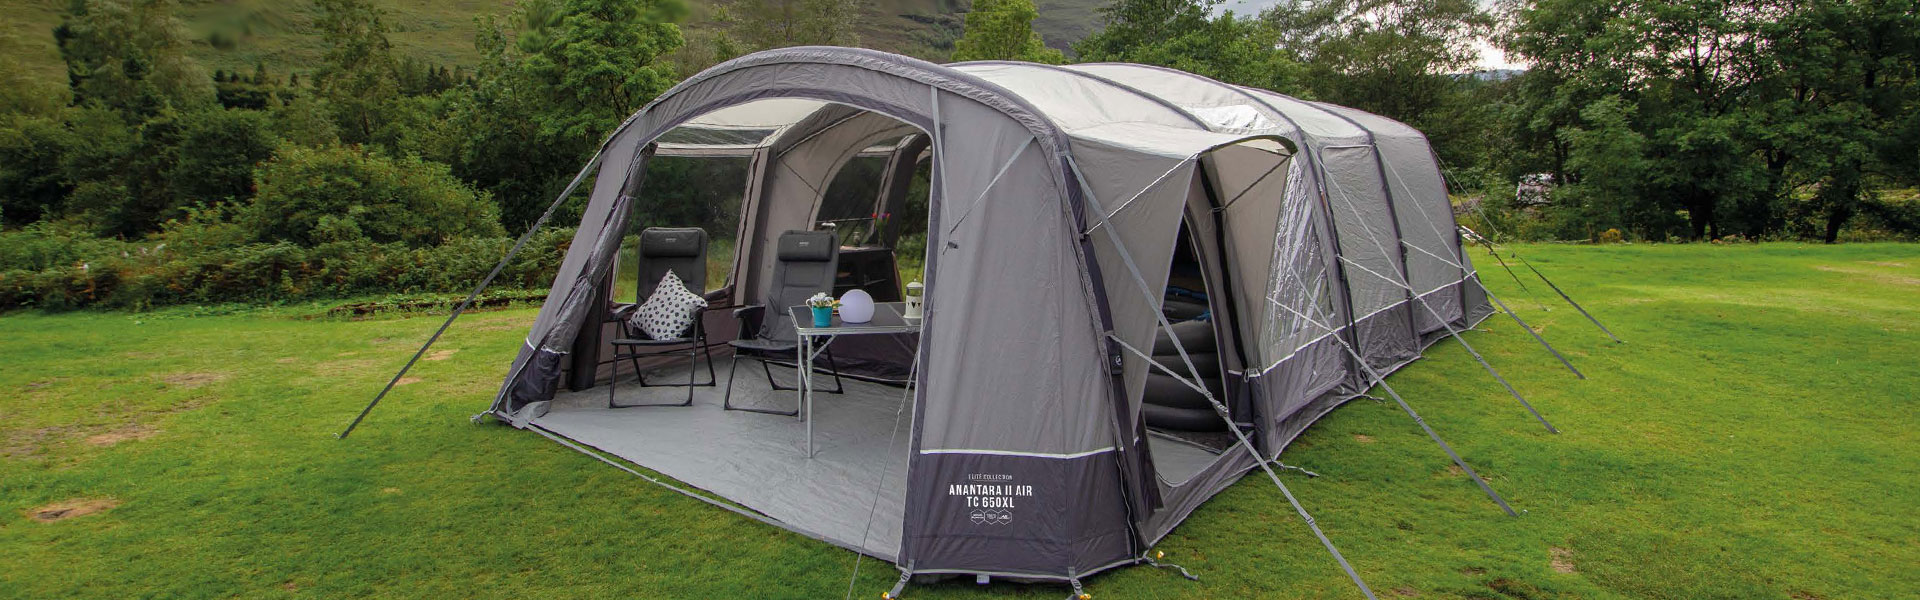 Vango Airbeam Elite